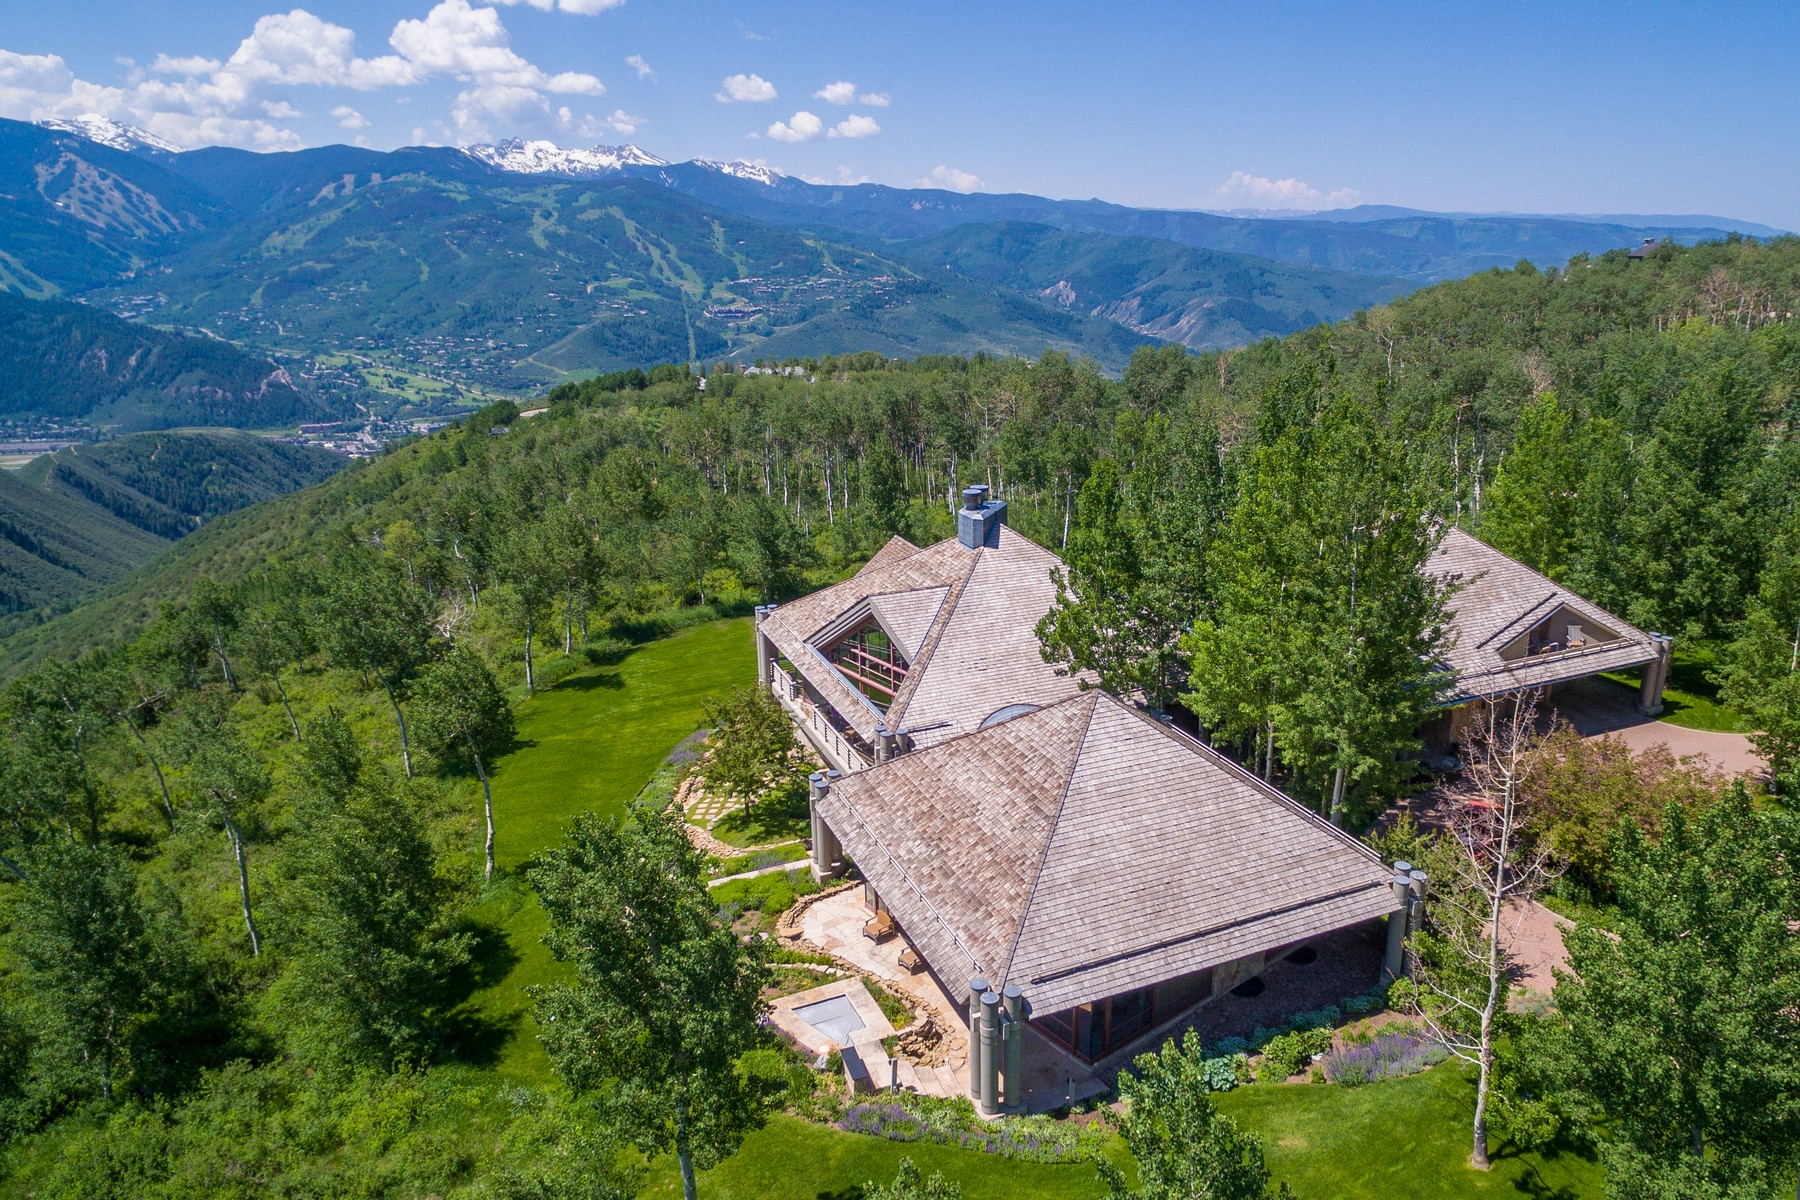 Single Family Home for Sale at 56 Rose Crown 56 Rose Crown Beaver Creek, Colorado 81620 United States